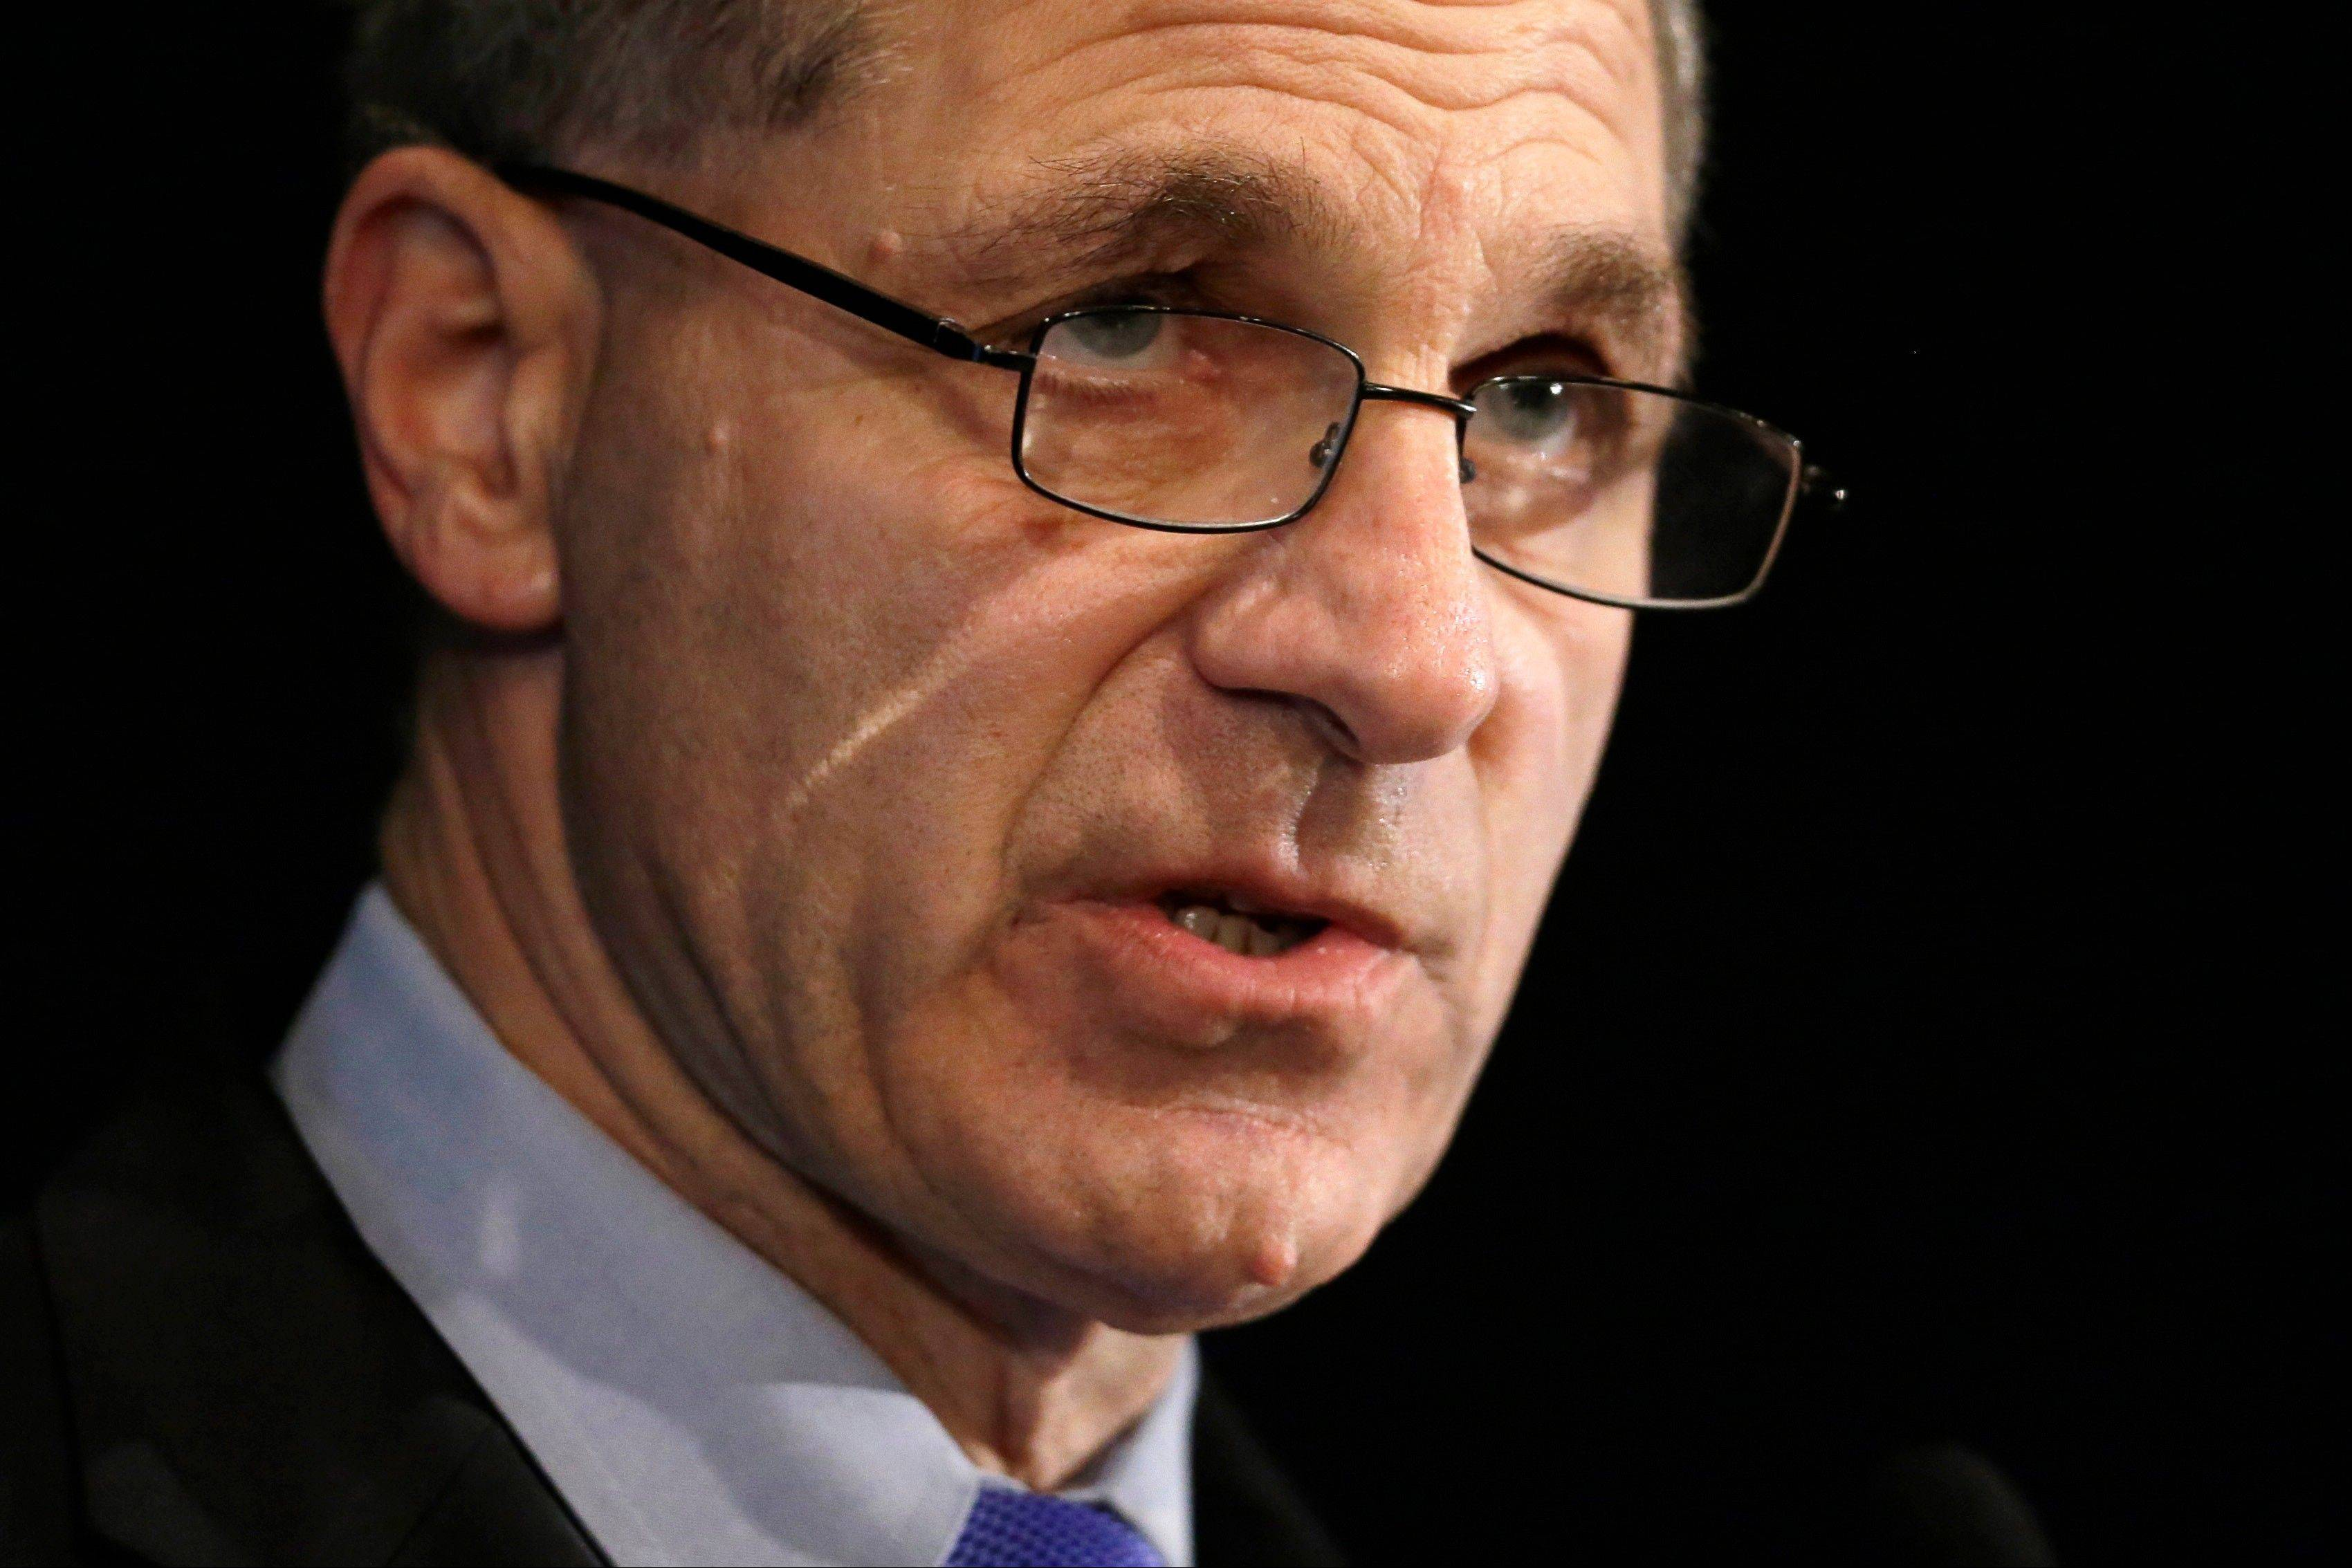 Reaction to Freeh Group's findings on Penn State